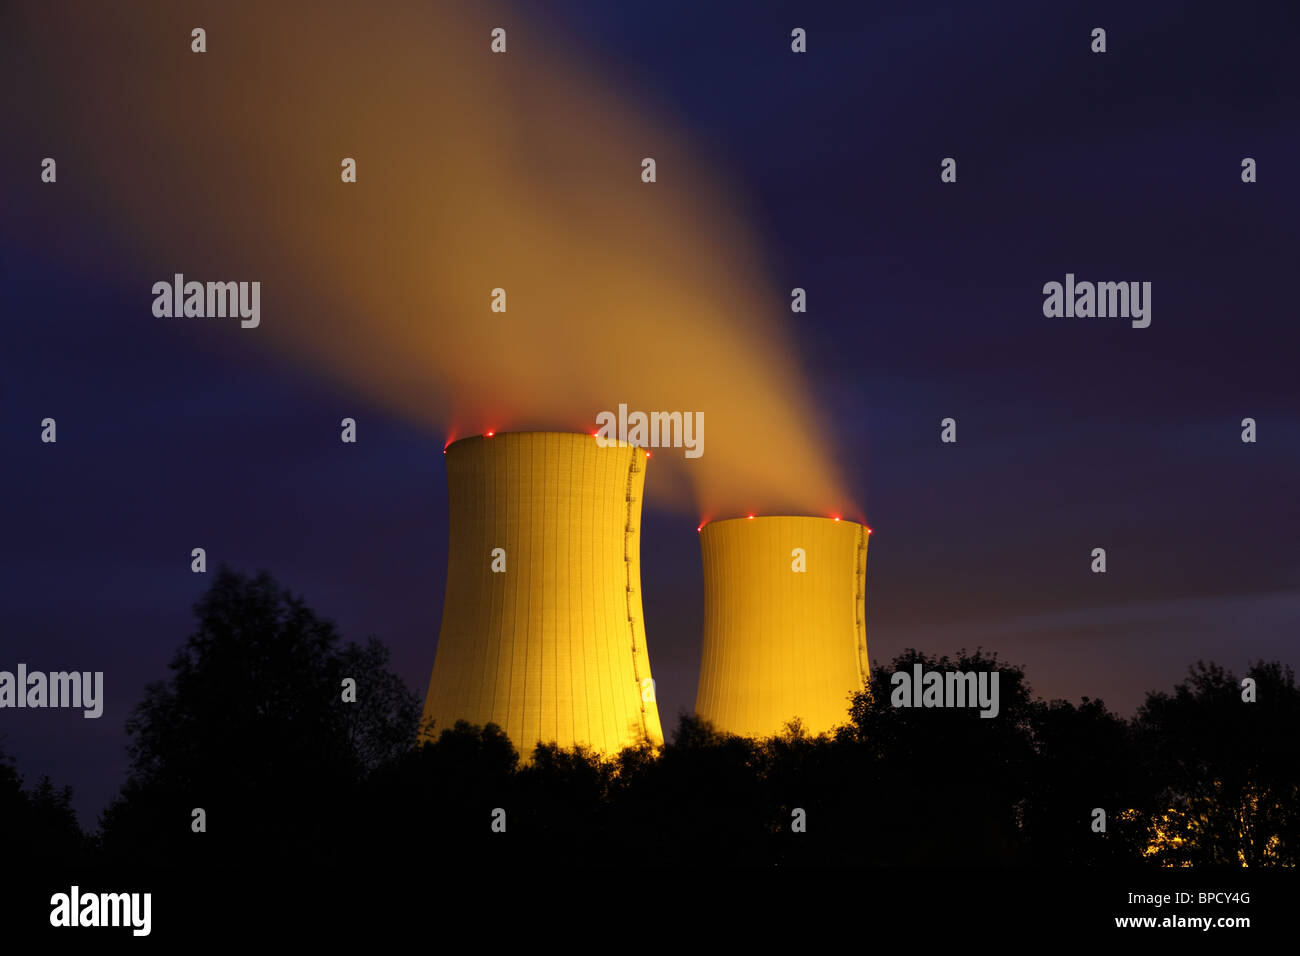 Nuclear power plant at night - Stock Image